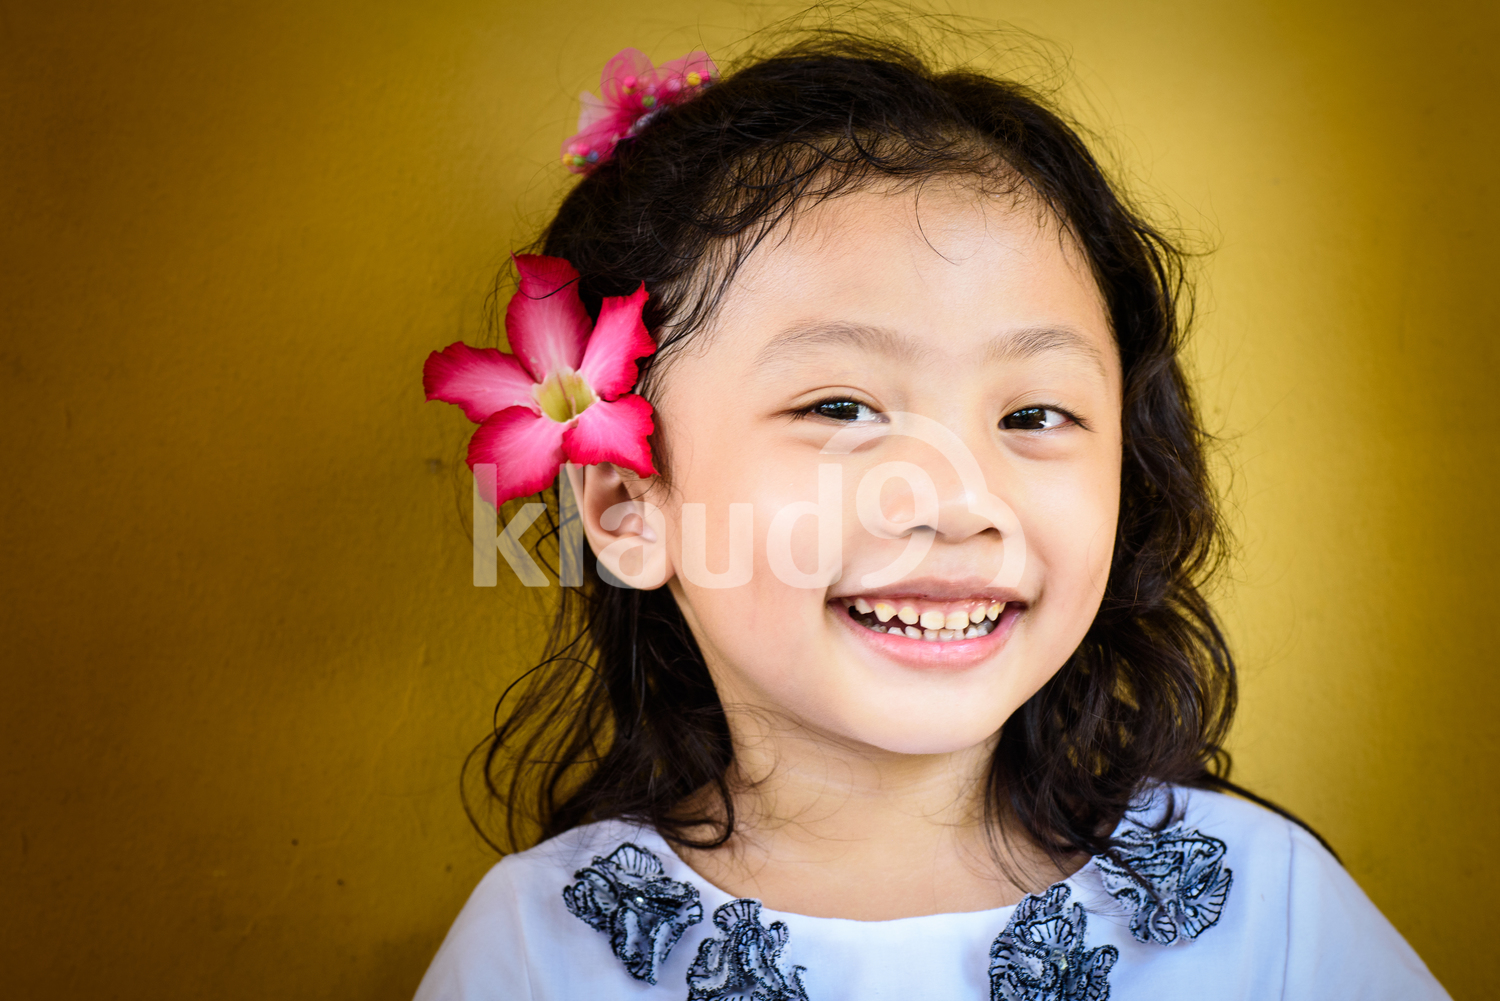 Young girl with flower in hair smiling for the camera